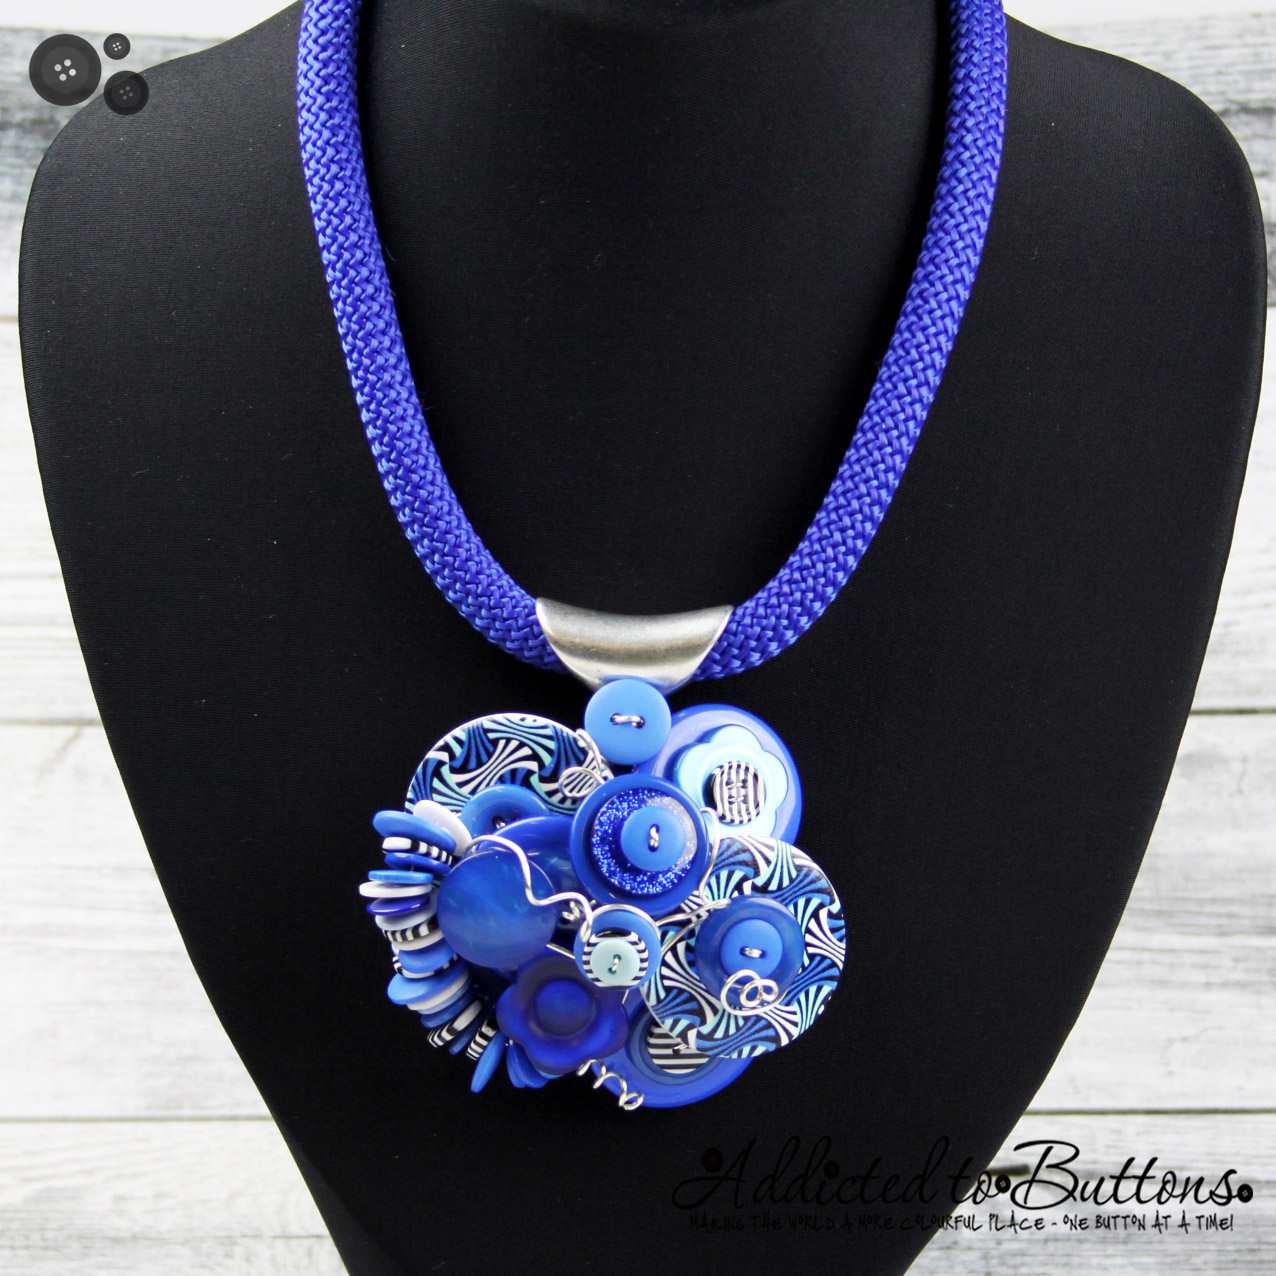 2015_Rope_Necklace_Cluster_blue waves_01